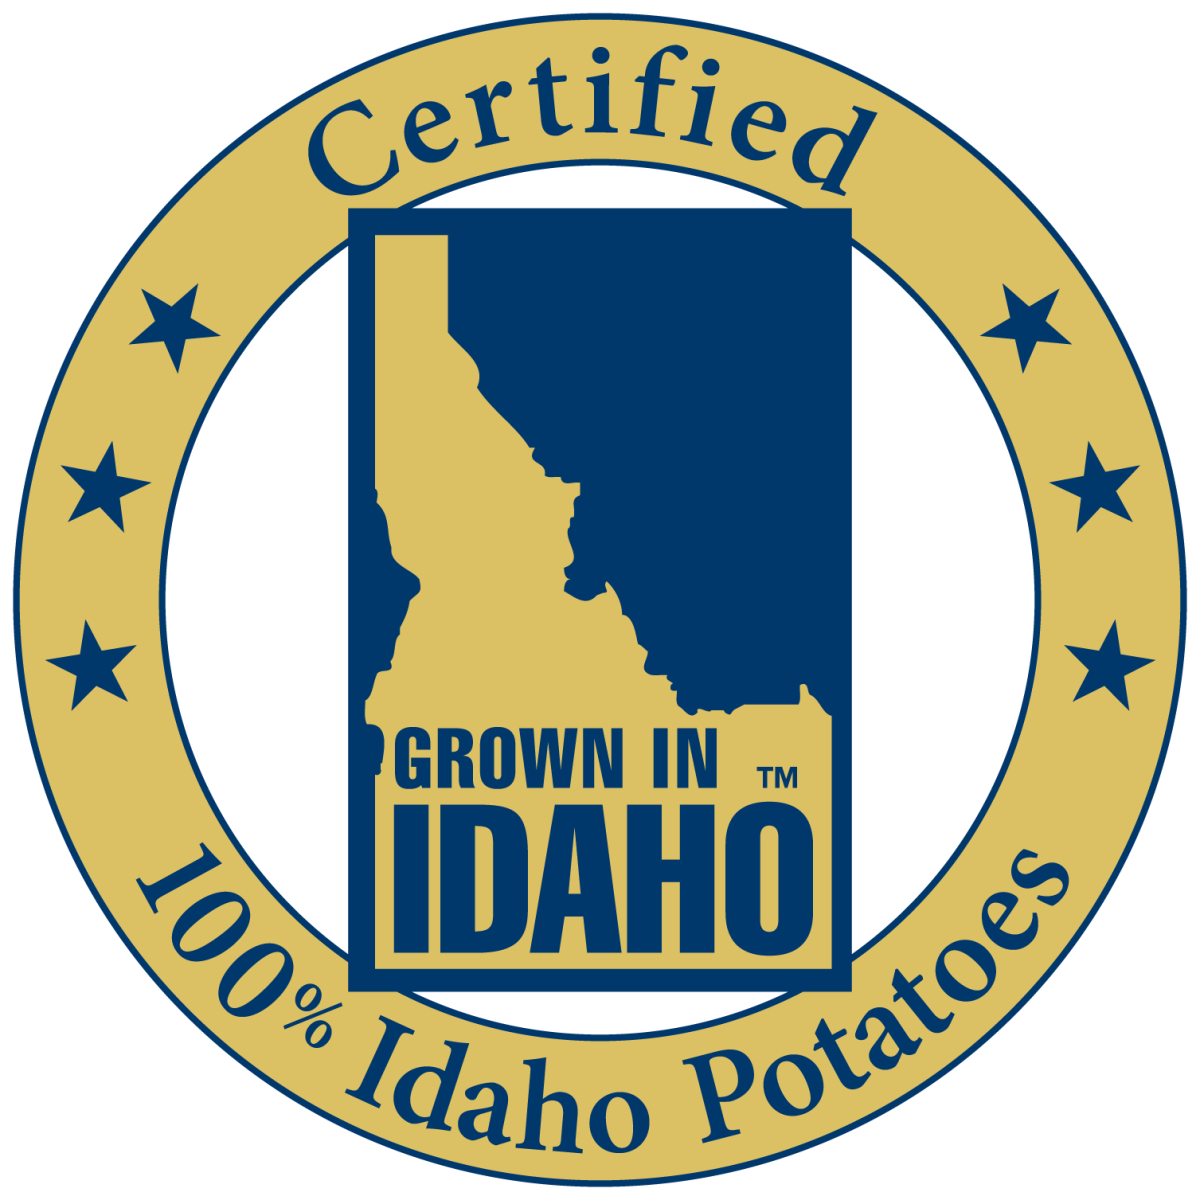 Idaho Potato Board